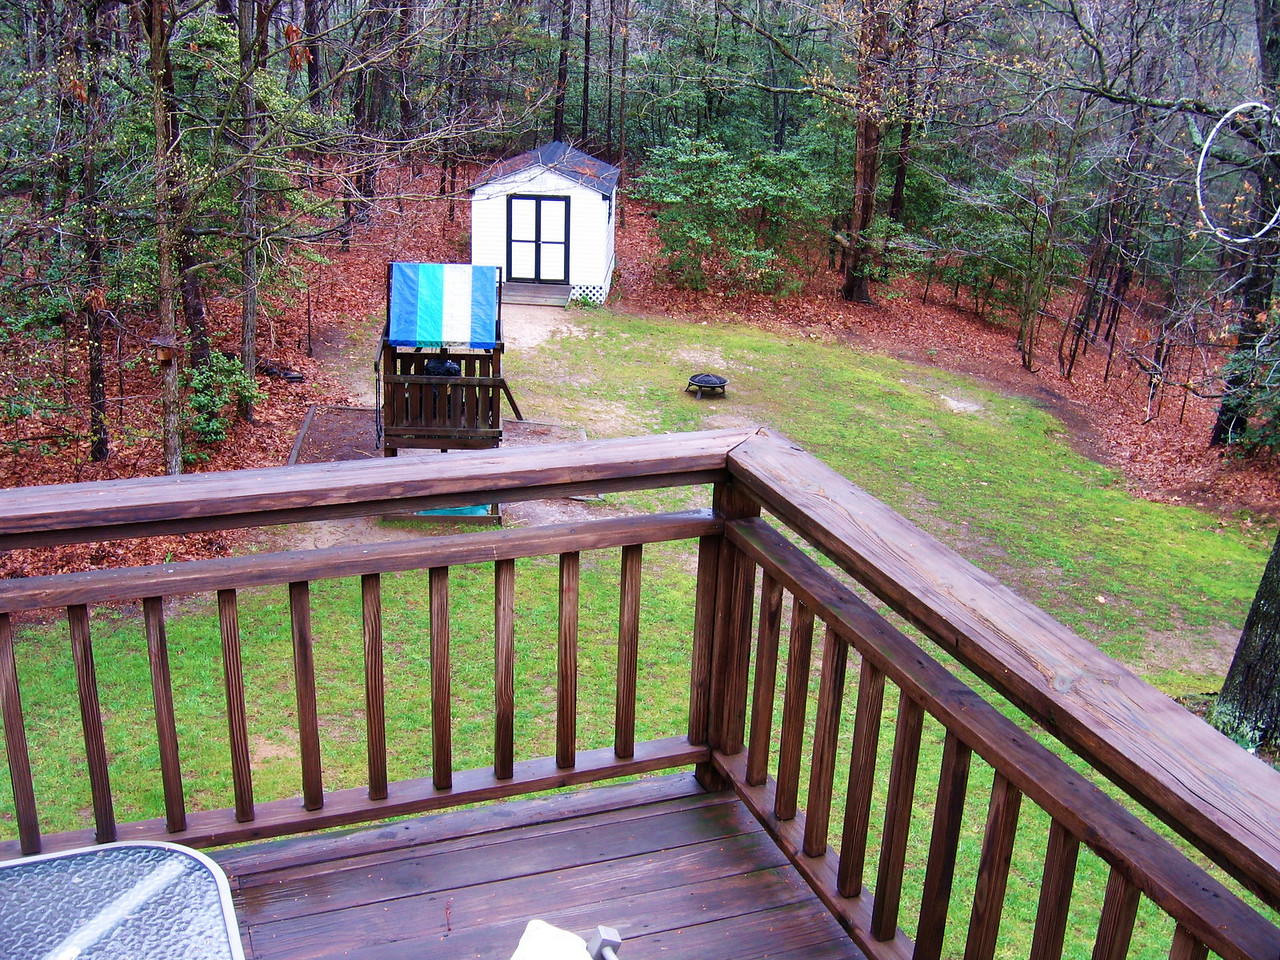 Another view of the backyard from the deck.  Note the large tree to the right and the abandoned hula hoop.